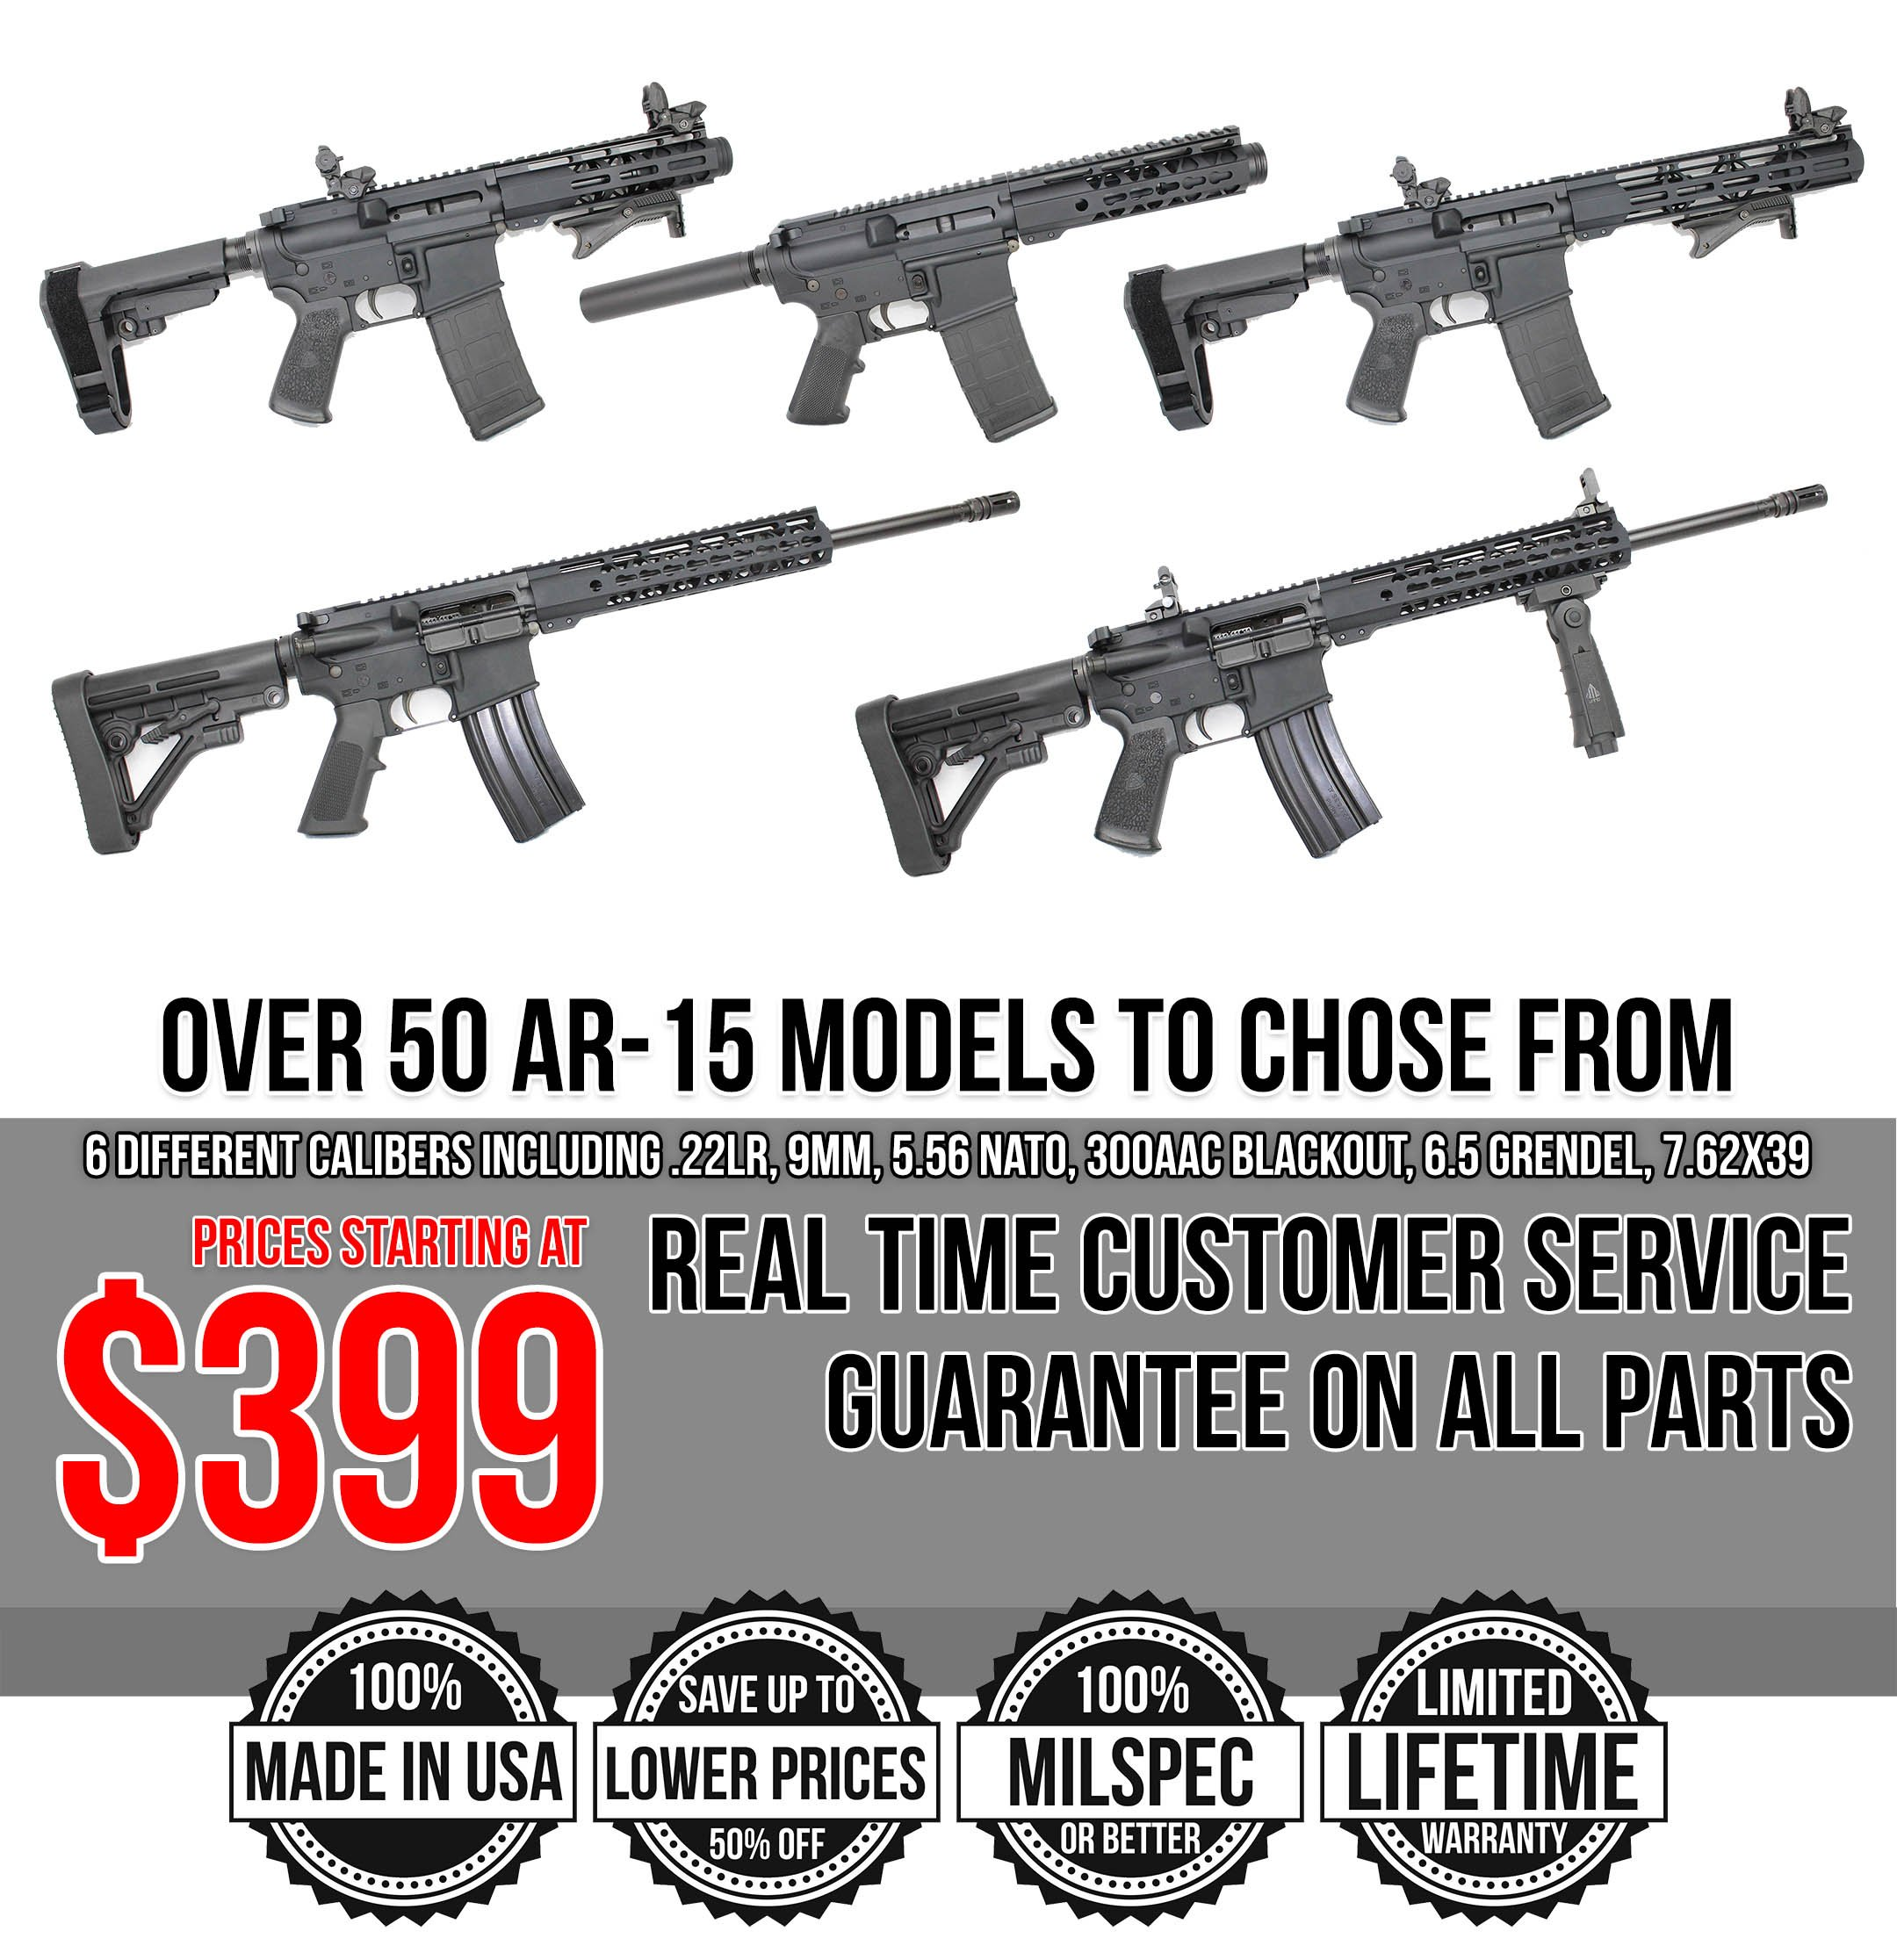 Complete AR15+MAG Starting @ $399! Wide Selection, Customizable, Flat Rate  $8 95 Shipping, Full Warranty!